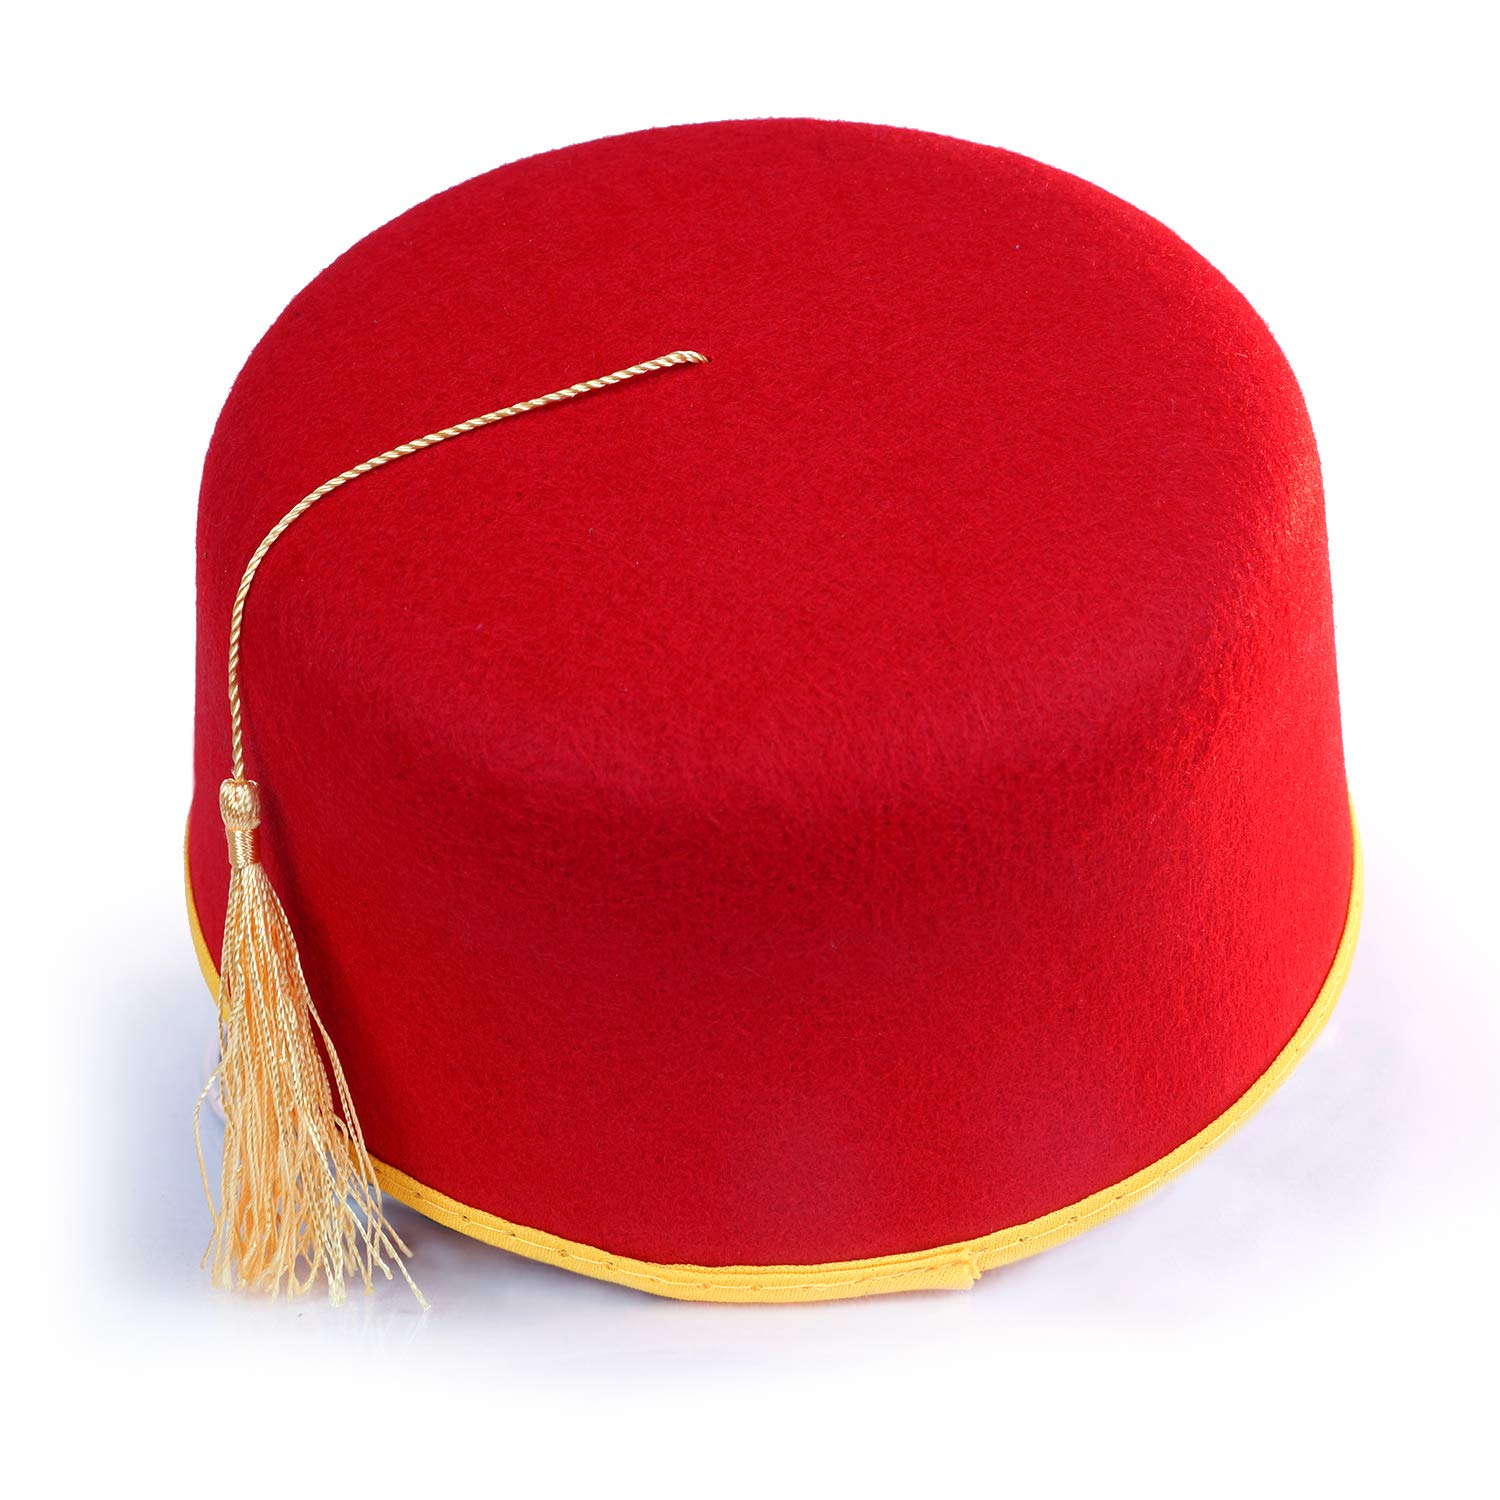 Red Fez Hat - Red with Gold Tassel & Trim - Costume Accessory